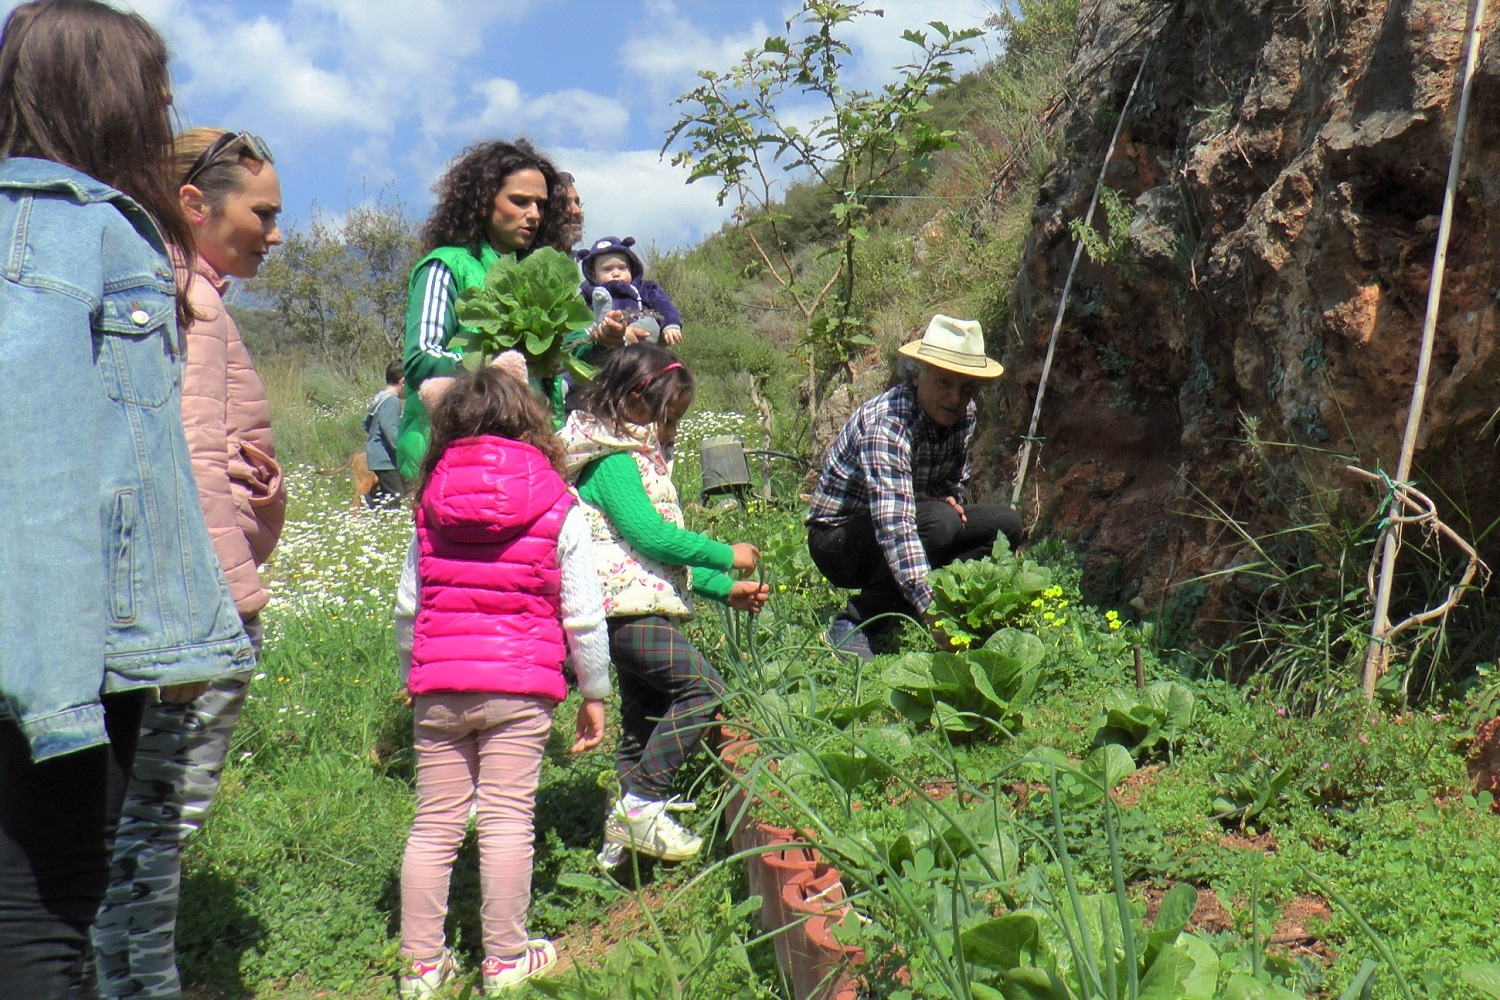 Art Farm messenia peloponnese farming with kids